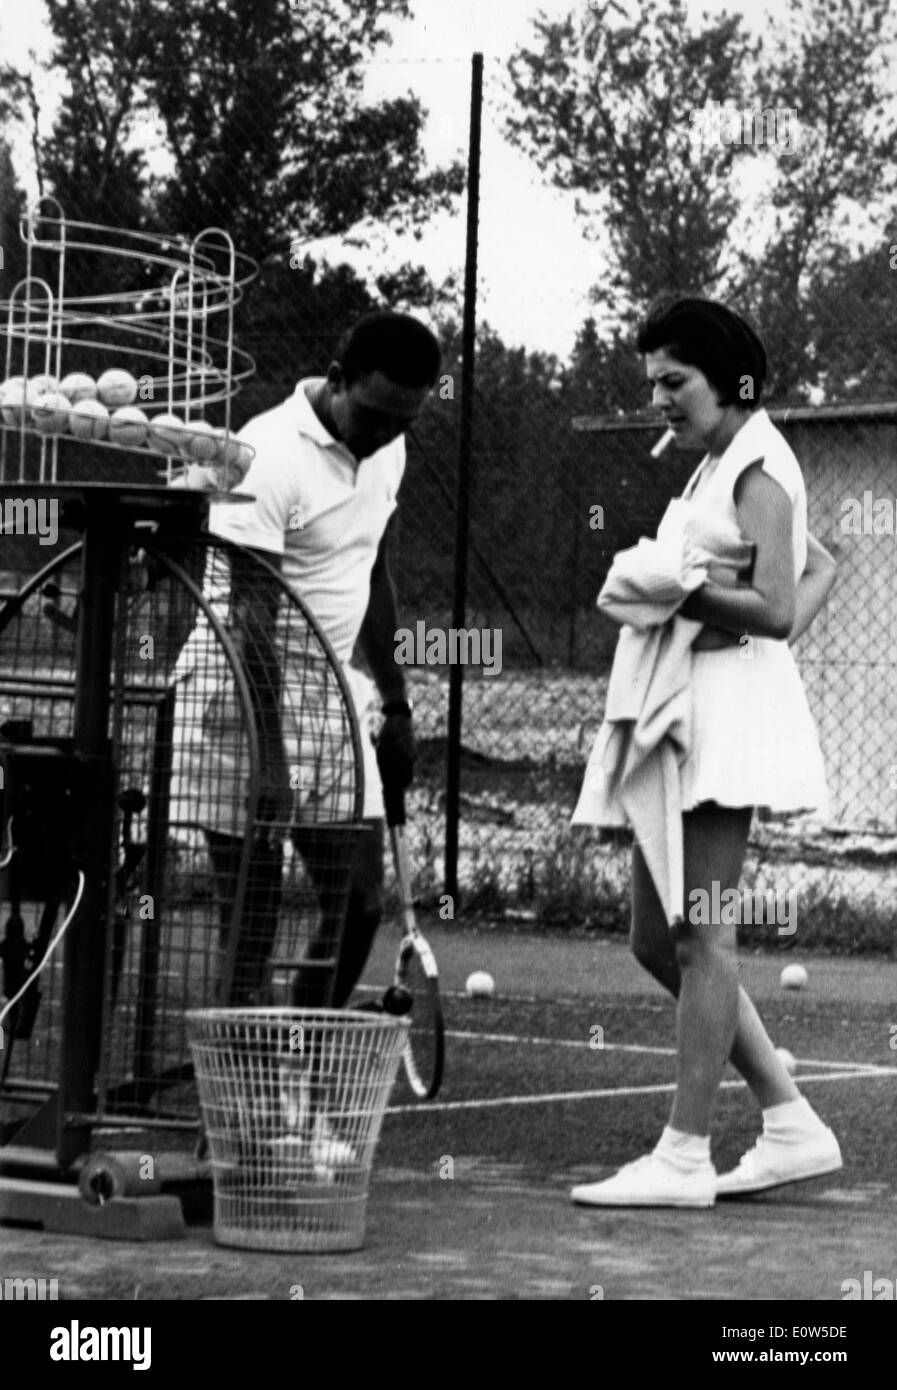 Princess Soraya with her coach during a tennis lesson - Stock Image